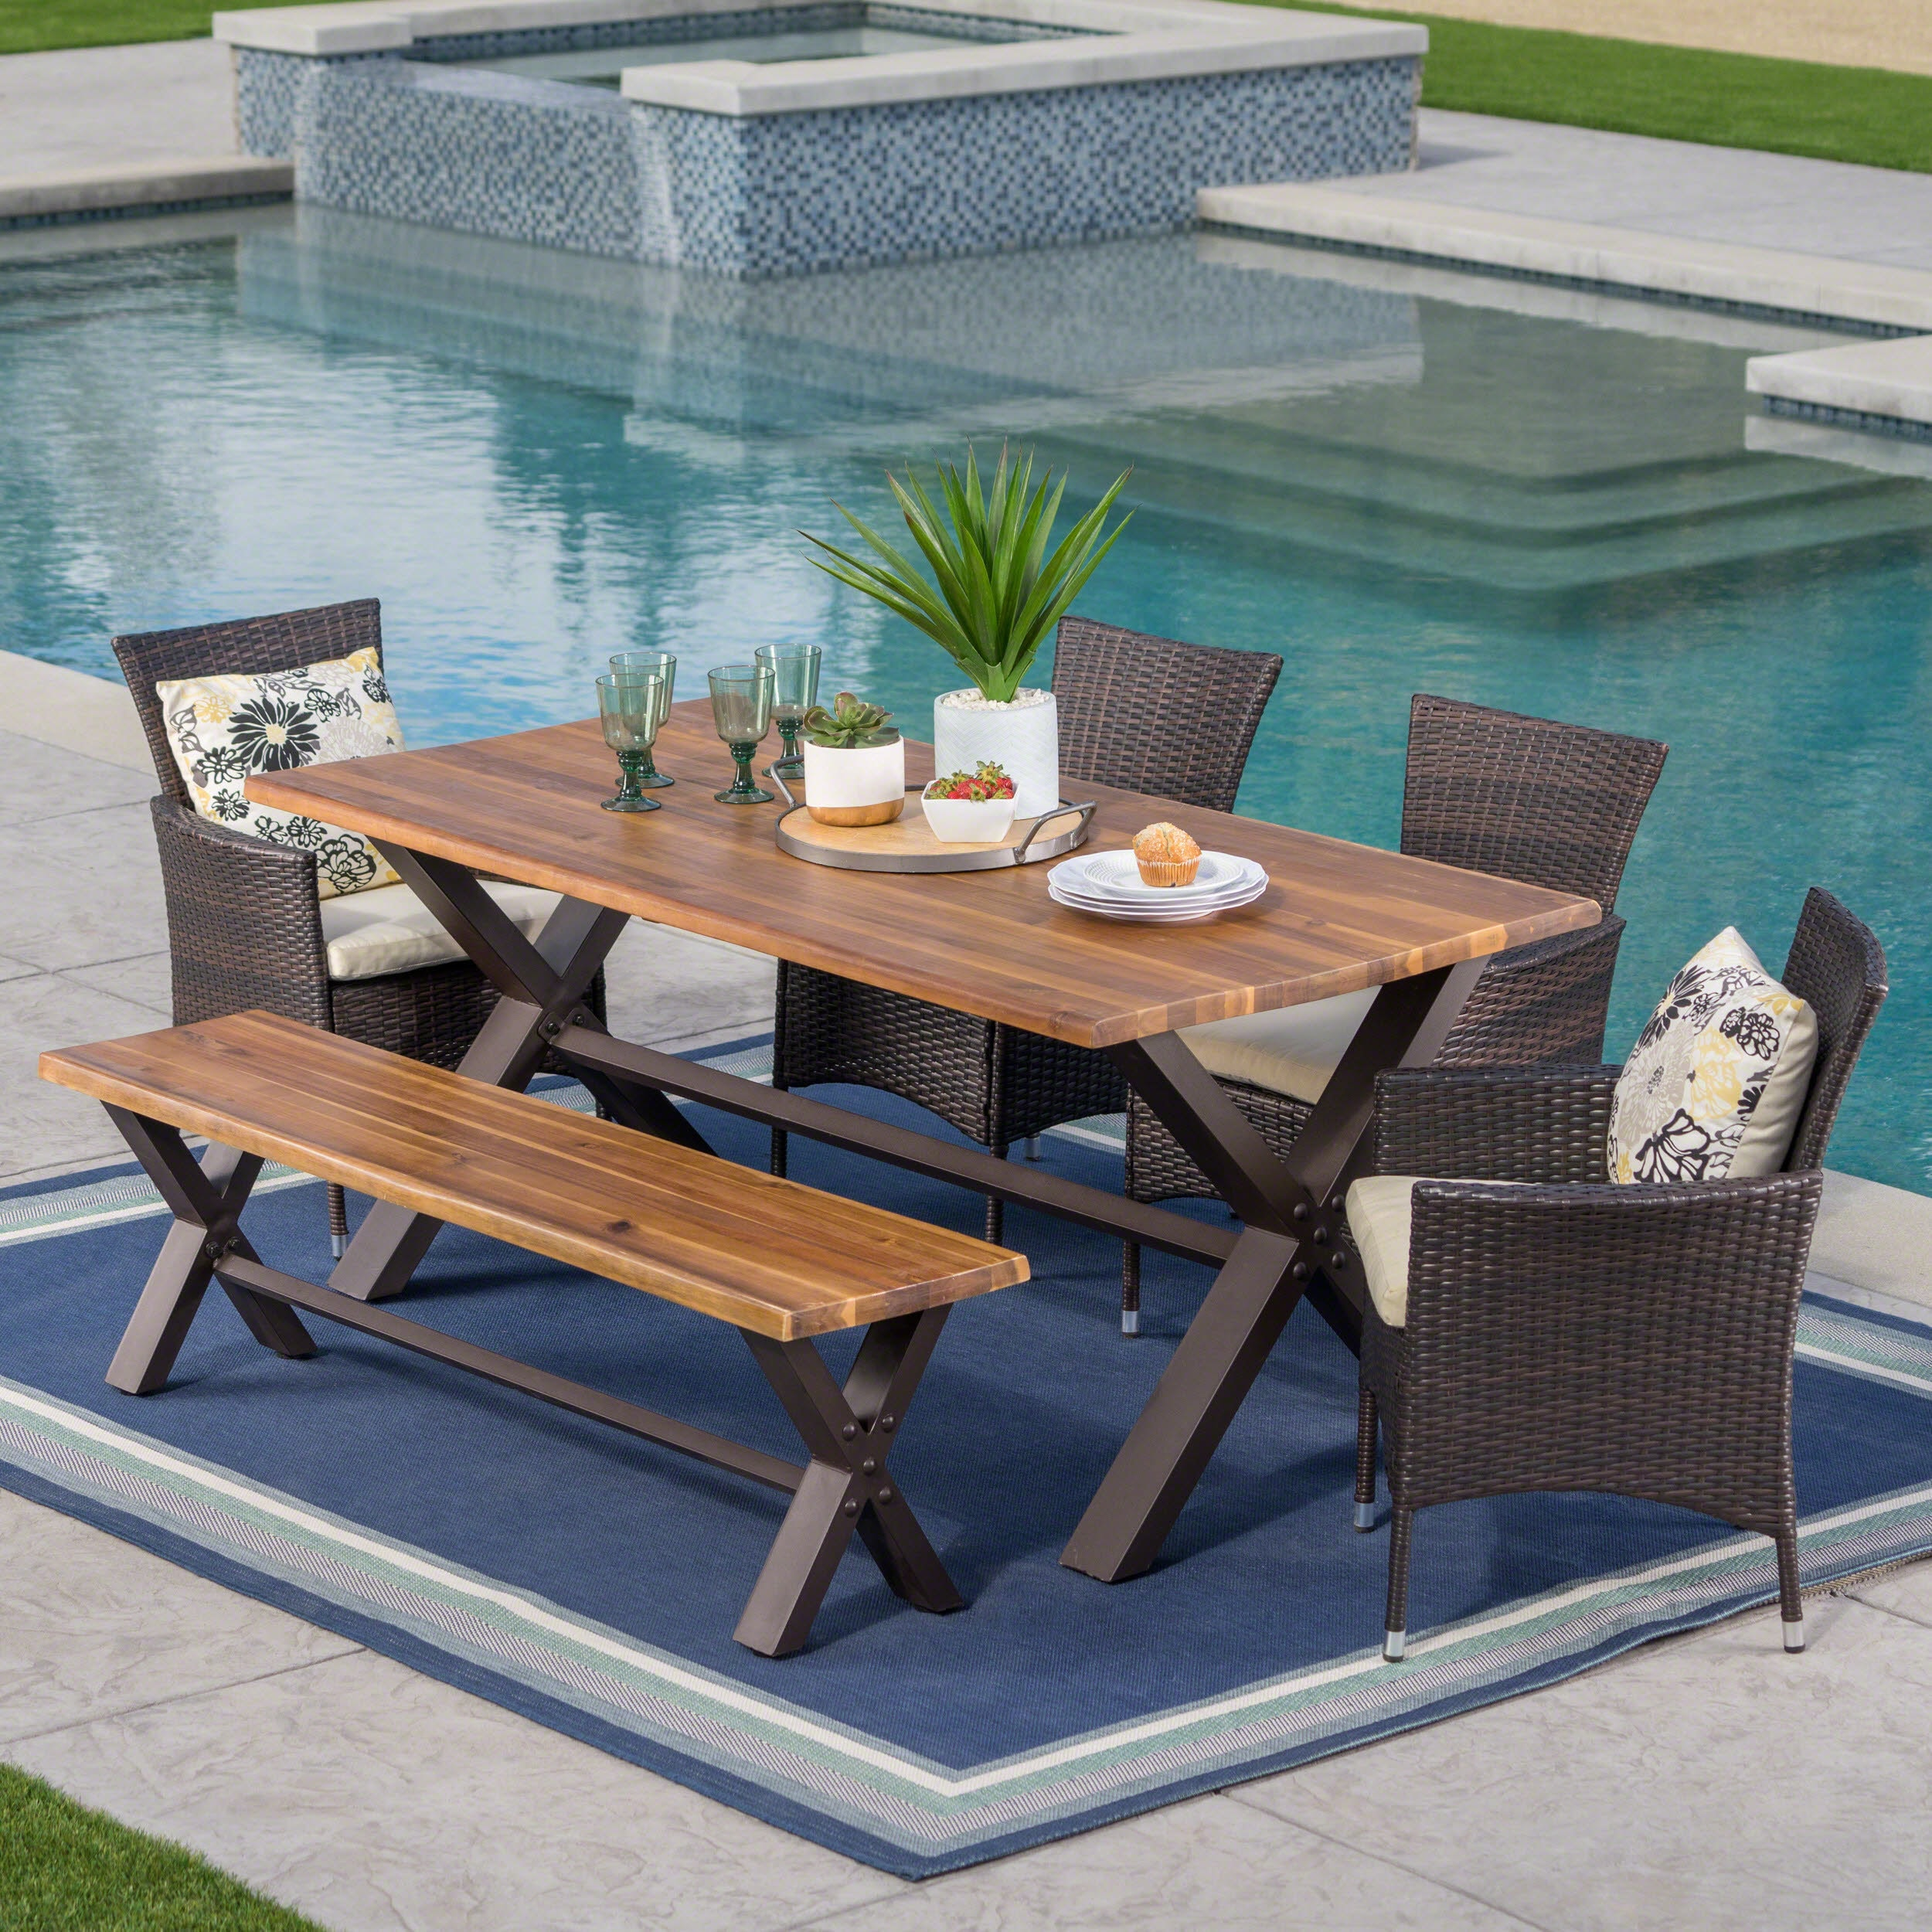 Patio Table Ozark Outdoor 6 Piece Rectangle Wicker Wood Dining Set With Cushions By Christopher Knight Home